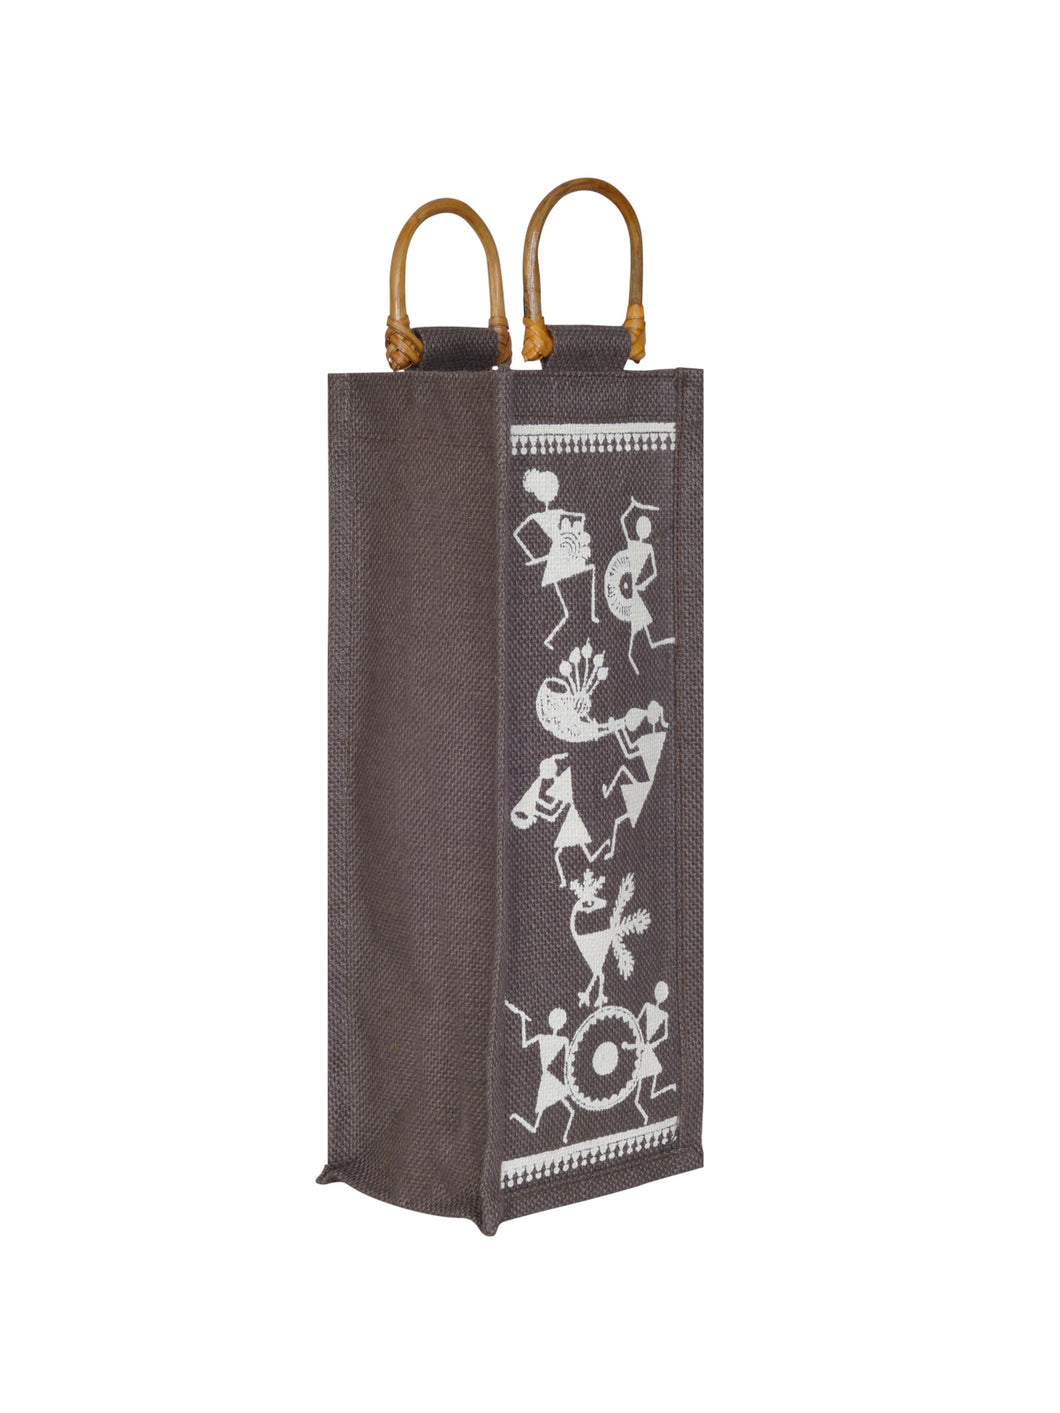 BOTTLE BAG WARLI PRINT 2 (B-163-BROWN)